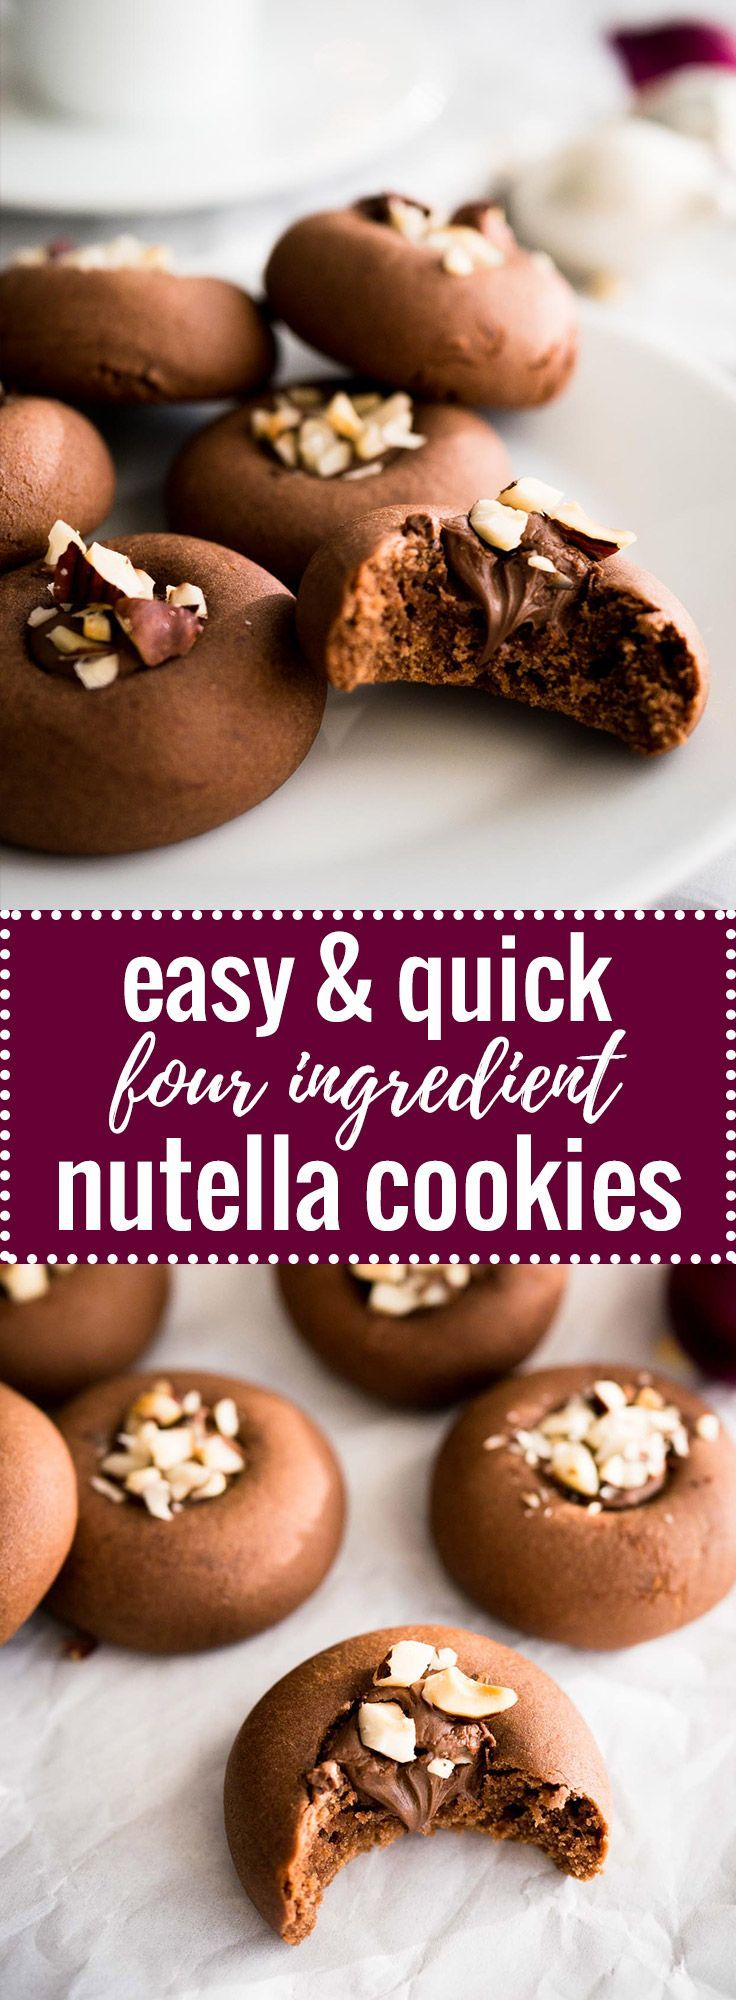 These Nutella Cookies are SO easy and quick to make! You only need FOUR ingredients to make these hazelnut spread stuffed treats. Perfect for the holidays!